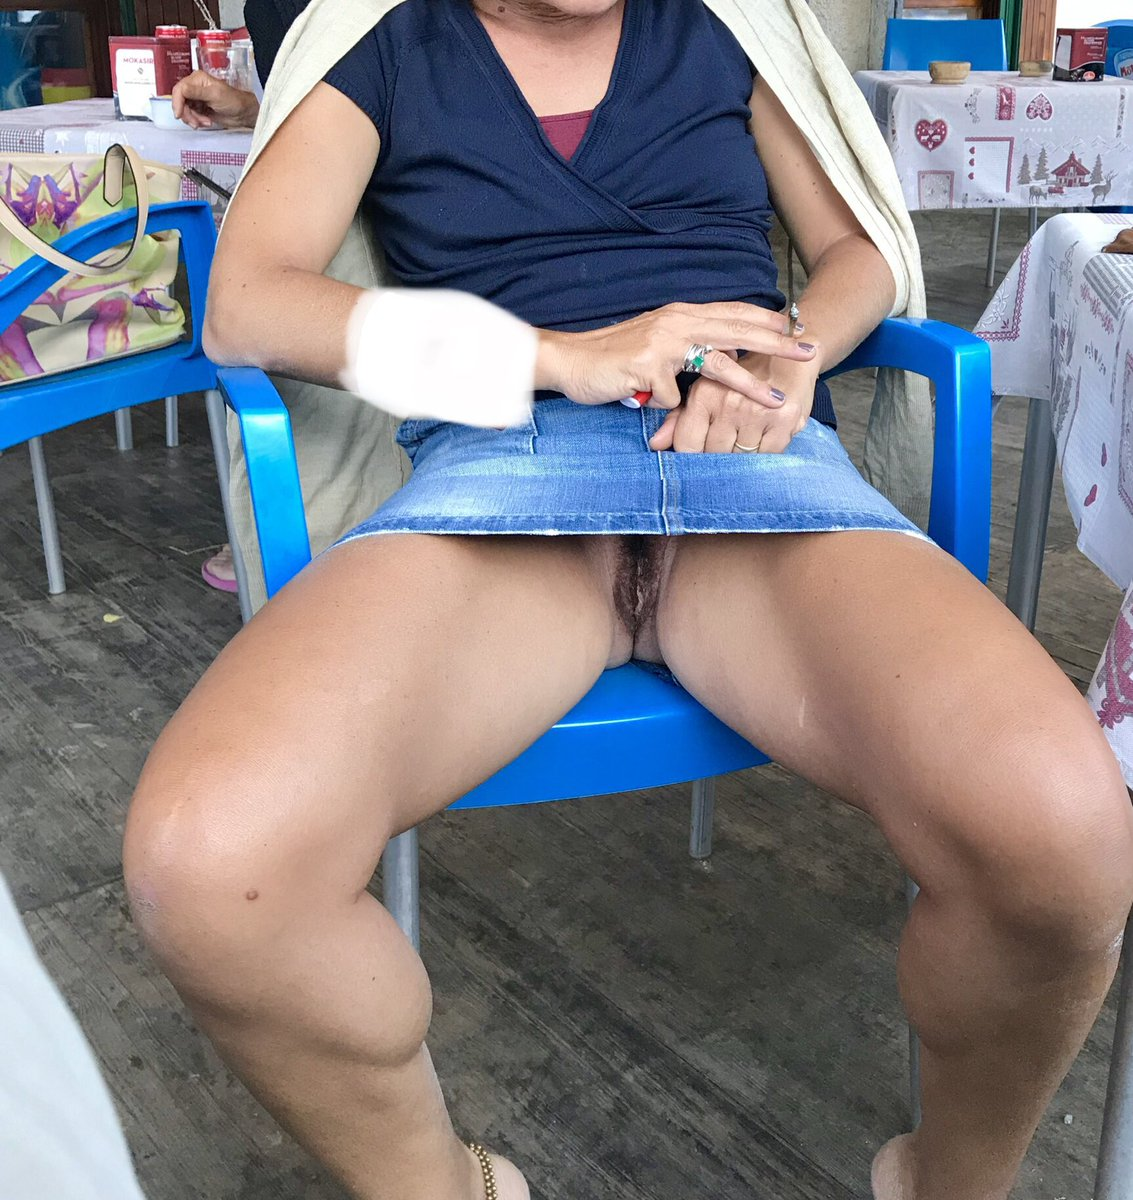 Twitter upskirt images.tinydeal.com: over